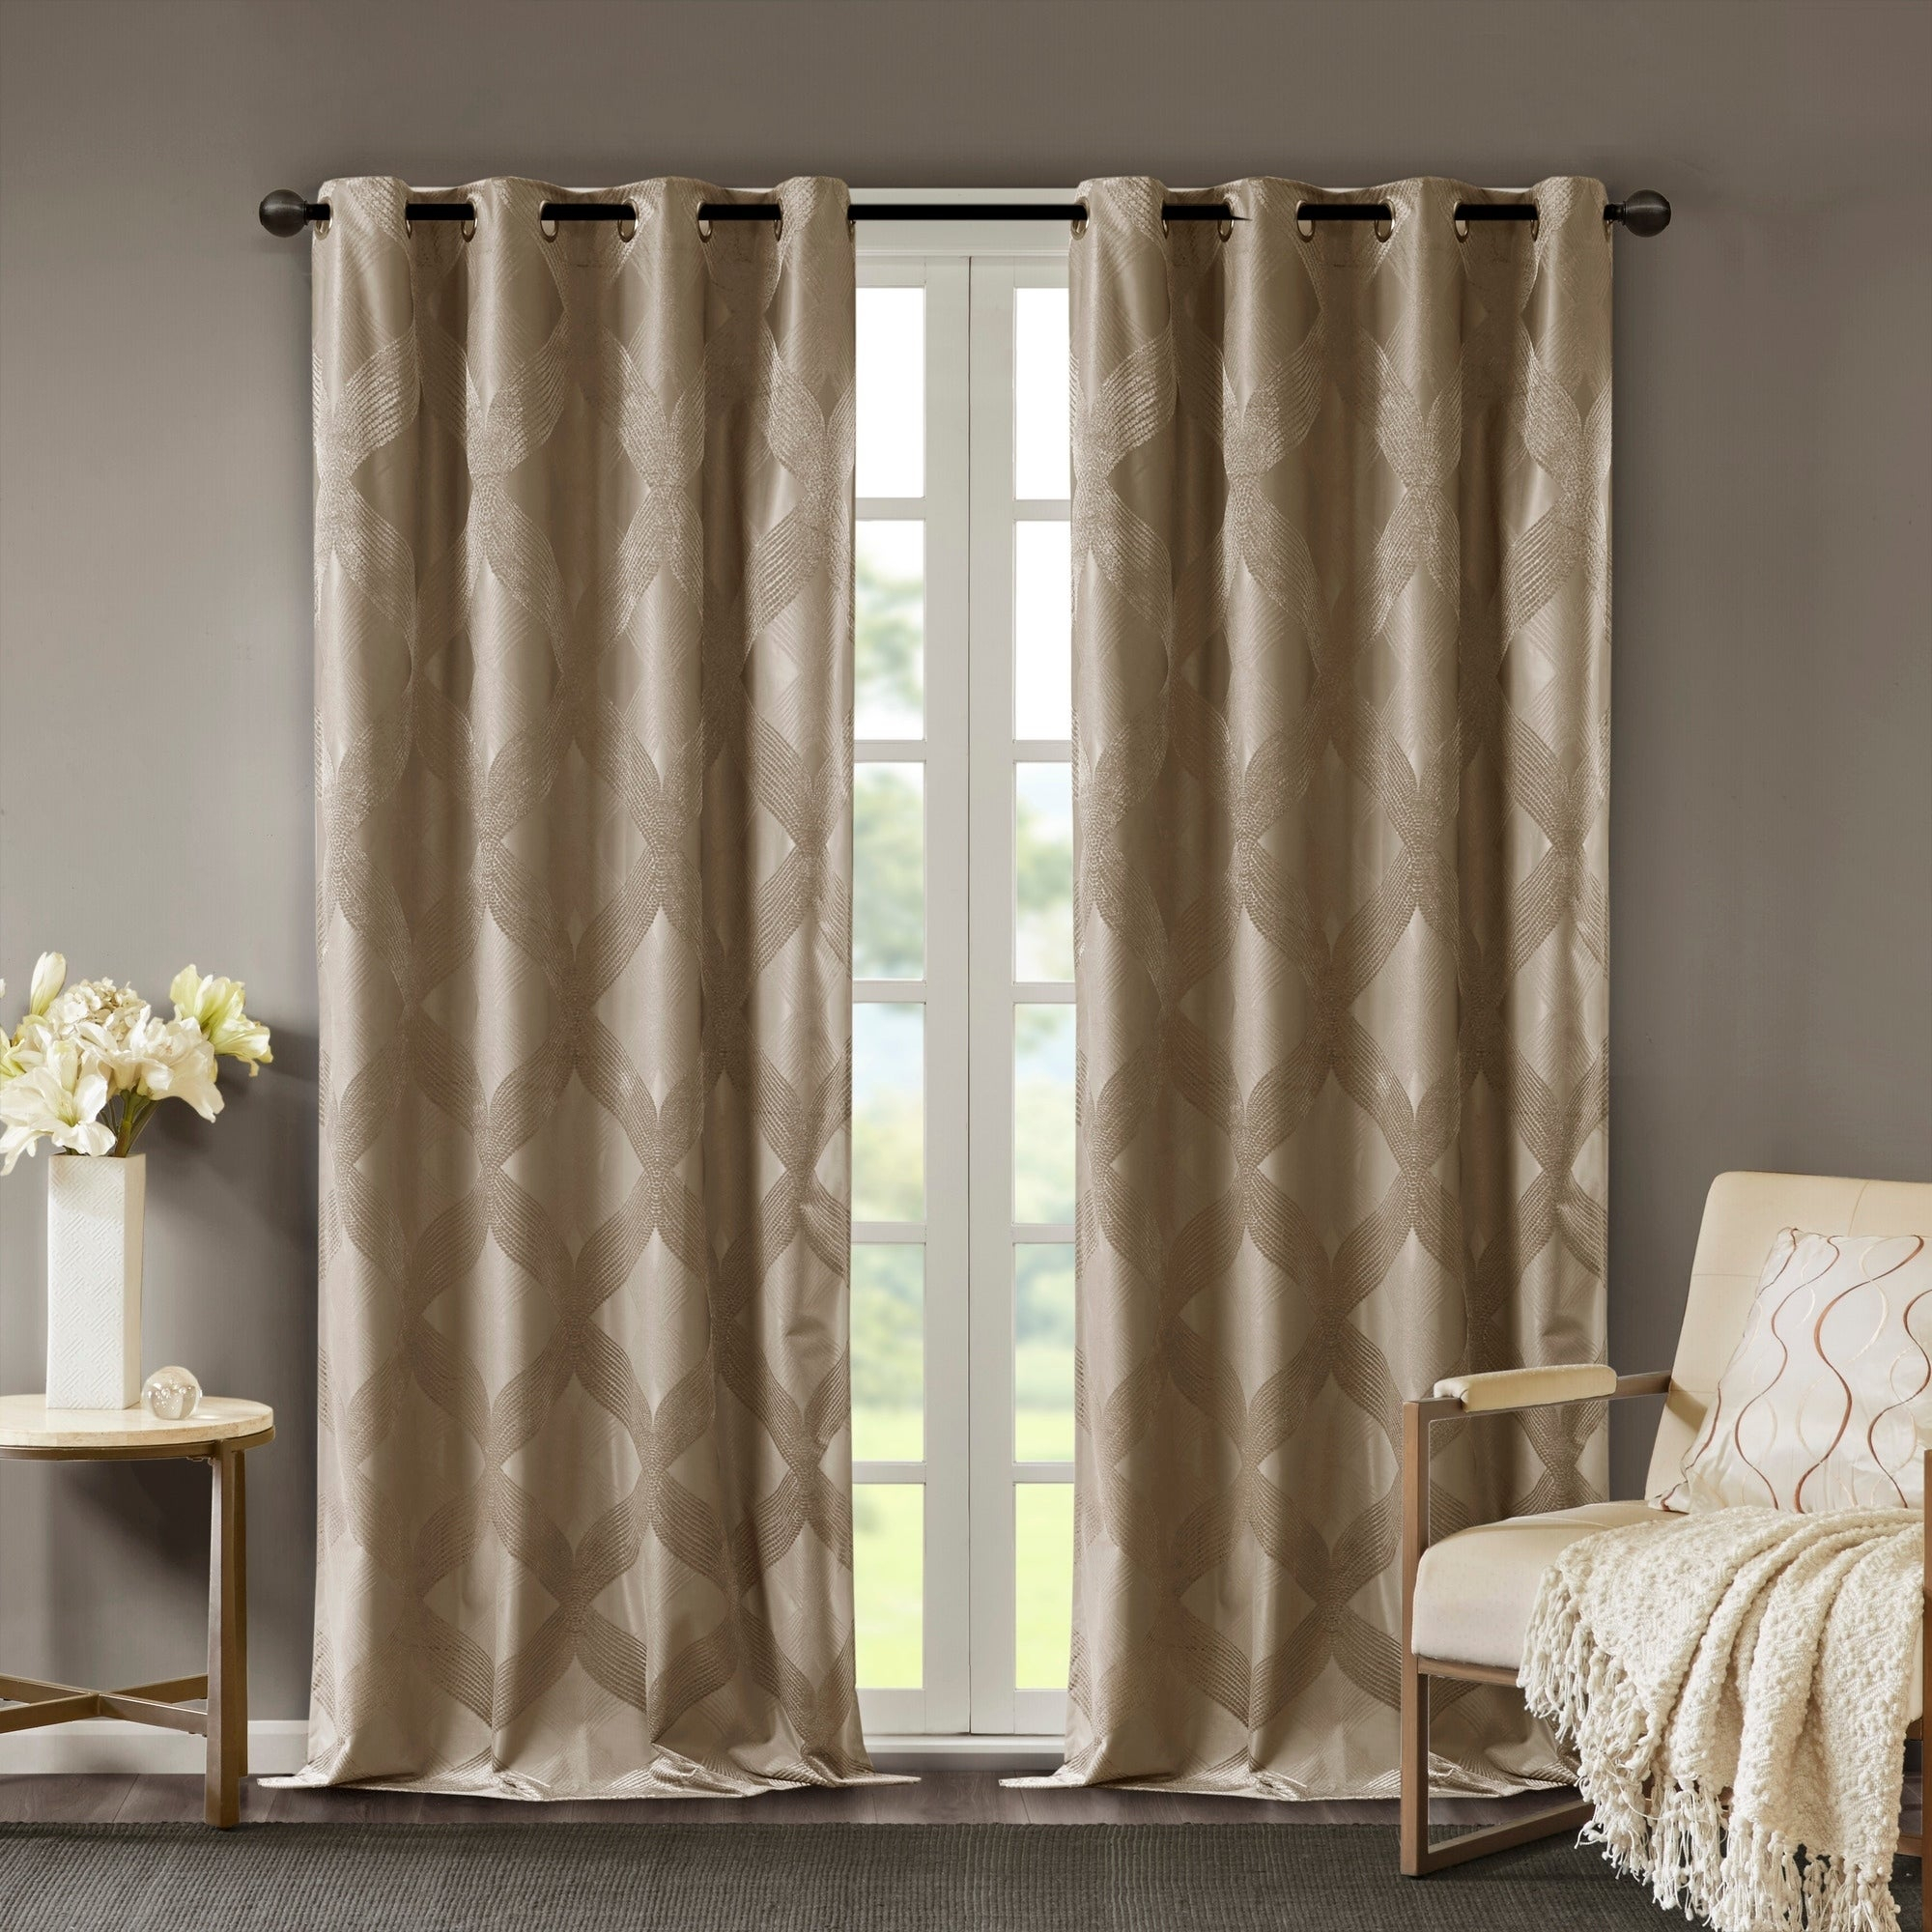 Sunsmart Abel Ogee Knitted Jacquard Total Blackout Curtain Panel Regarding Sunsmart Dahlia Paisley Printed Total Blackout Single Window Curtain Panels (View 14 of 30)